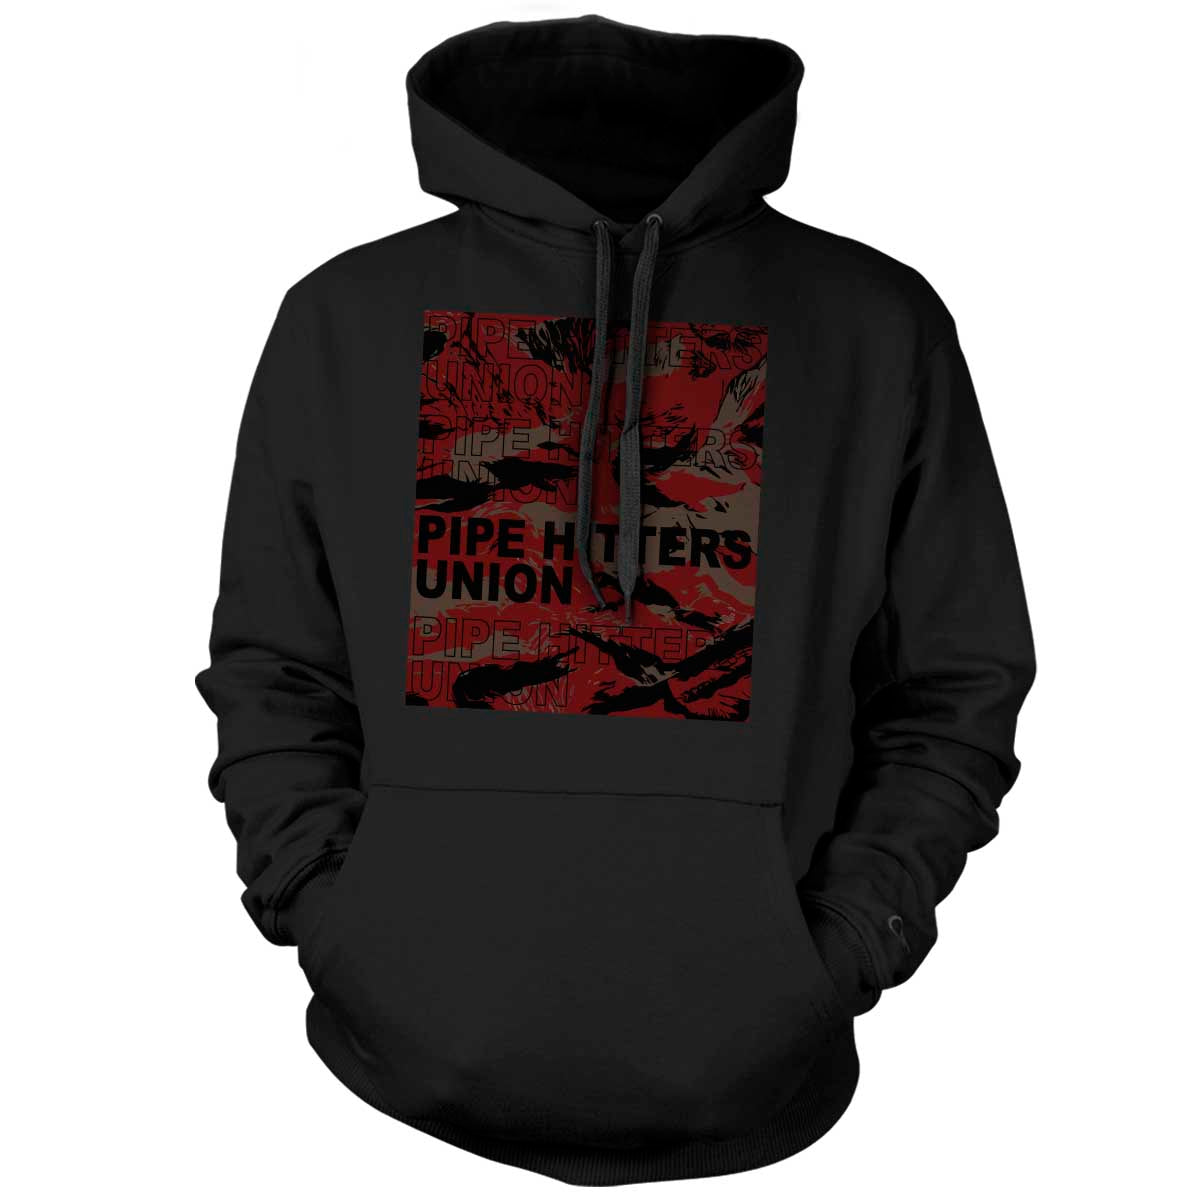 Pipe Hitter Pattern Analysis - Hoodie - Black/Red Tigerstripe - T-Shirts - Pipe Hitters Union